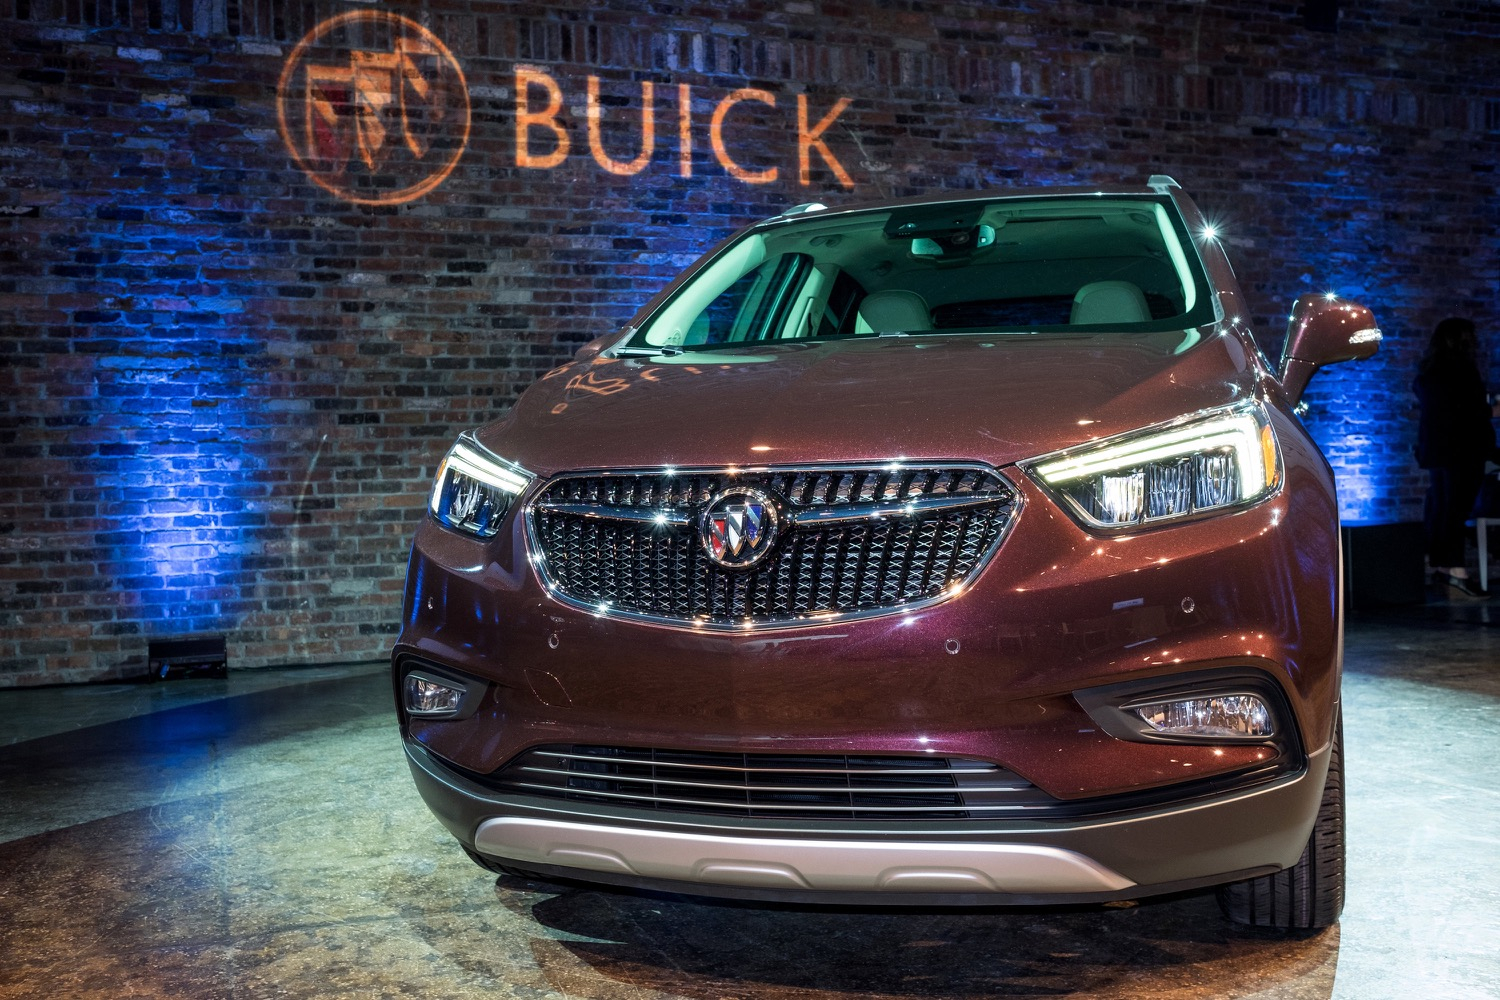 Buick Encore Is A Consumer Reports Best Used Car Under $20K New 2022 Buick Encore Problems, Specs, Safety Rating